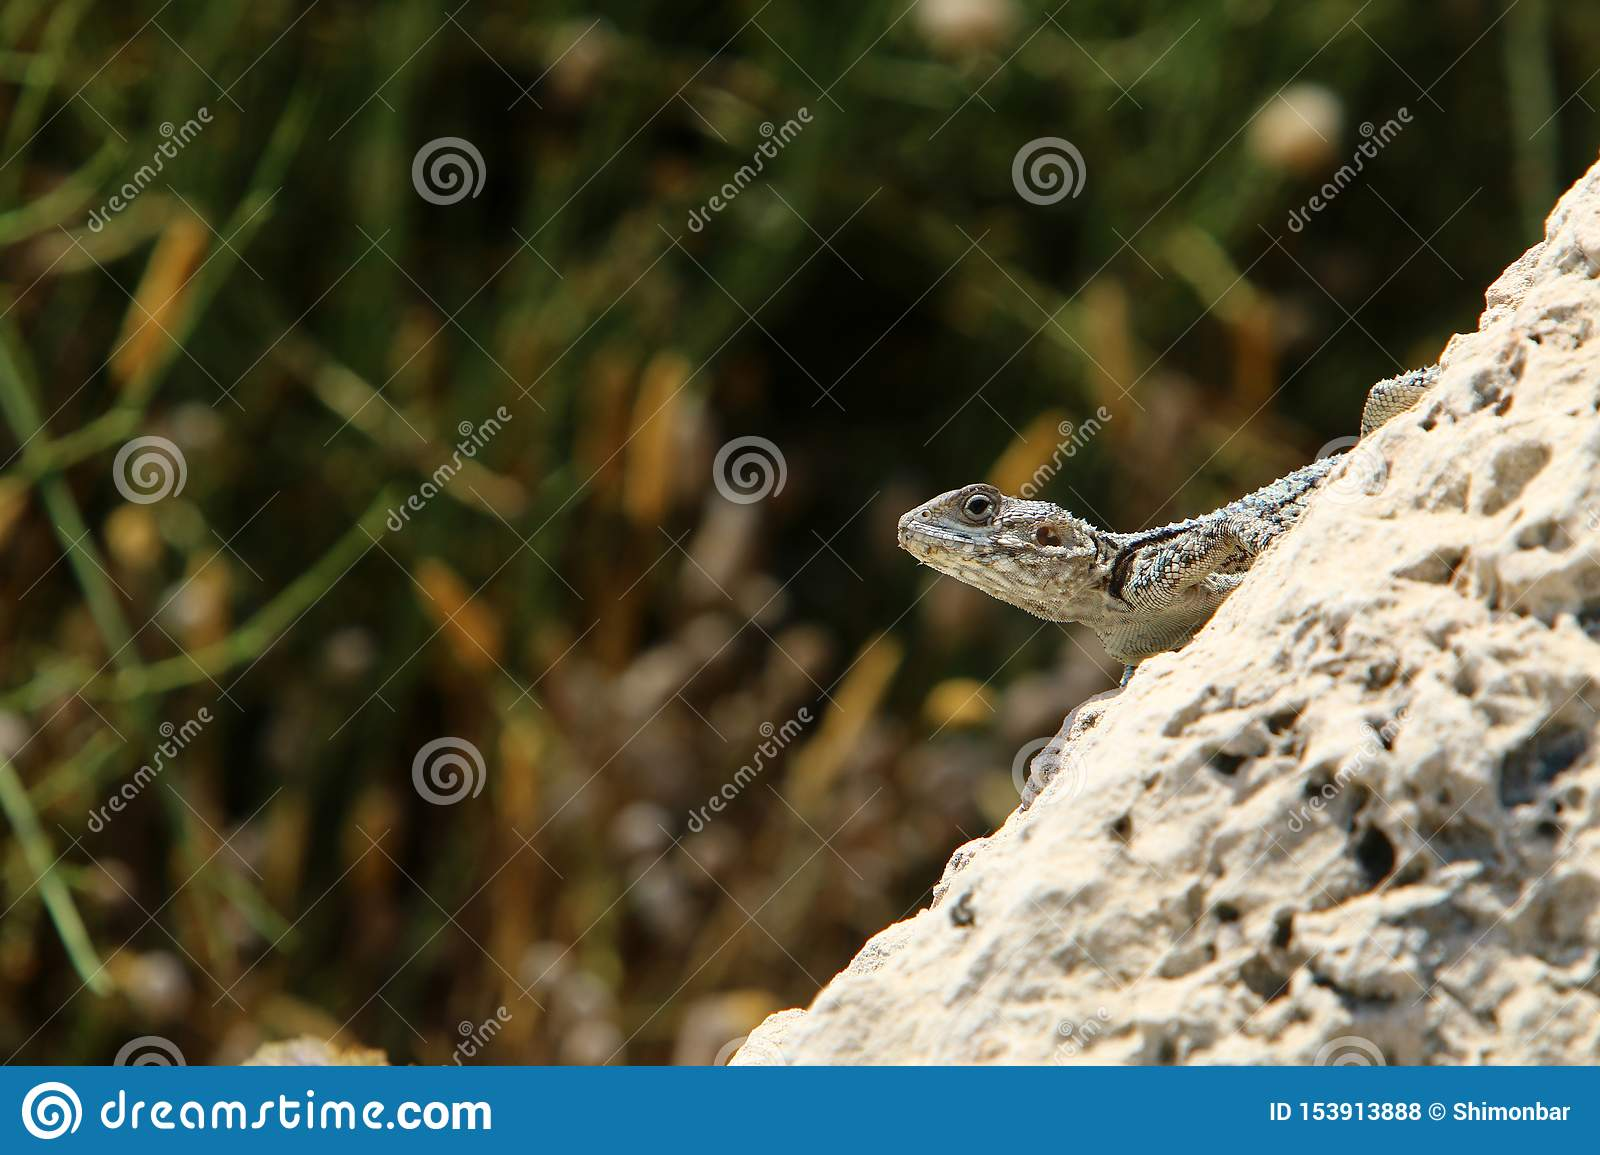 The lizard sits on a big rock and basks in the sun